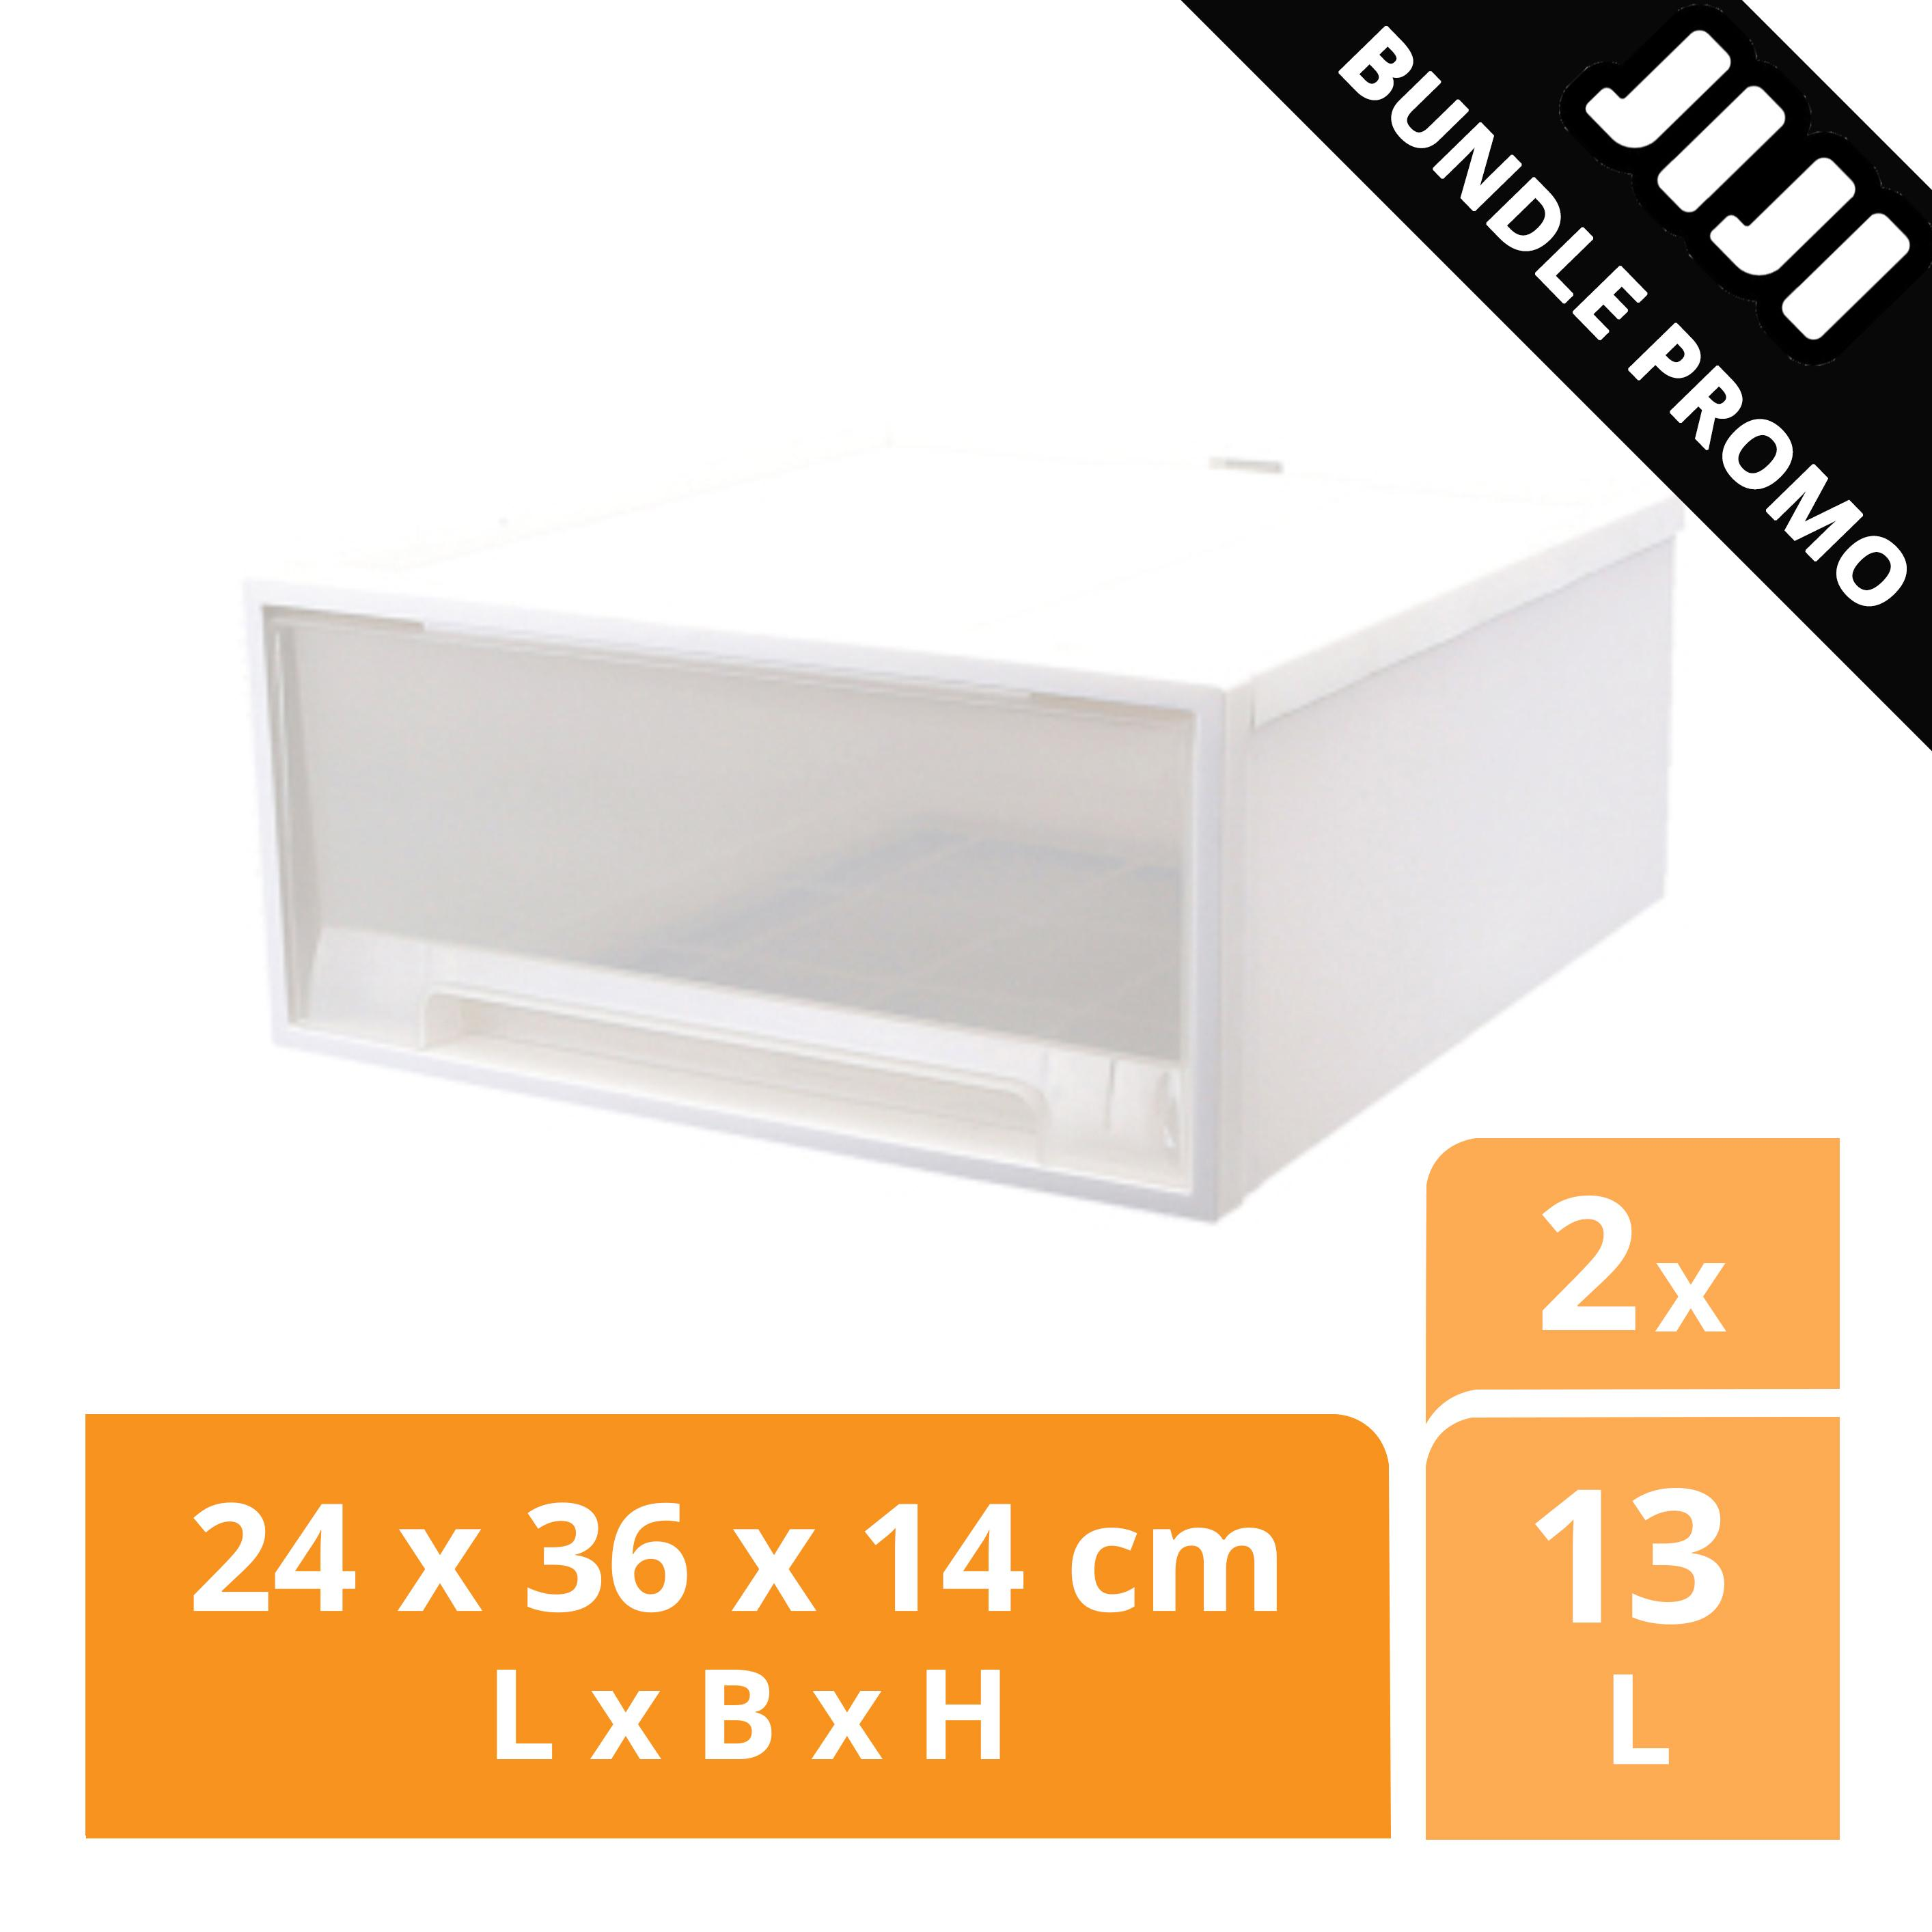 JIJI Bundle Promo of 2: SAMLA Chest Drawer / 13L / 36L / Storage Box / Container / Stackable / Bundle Set / FREE DELIVERY (SG)